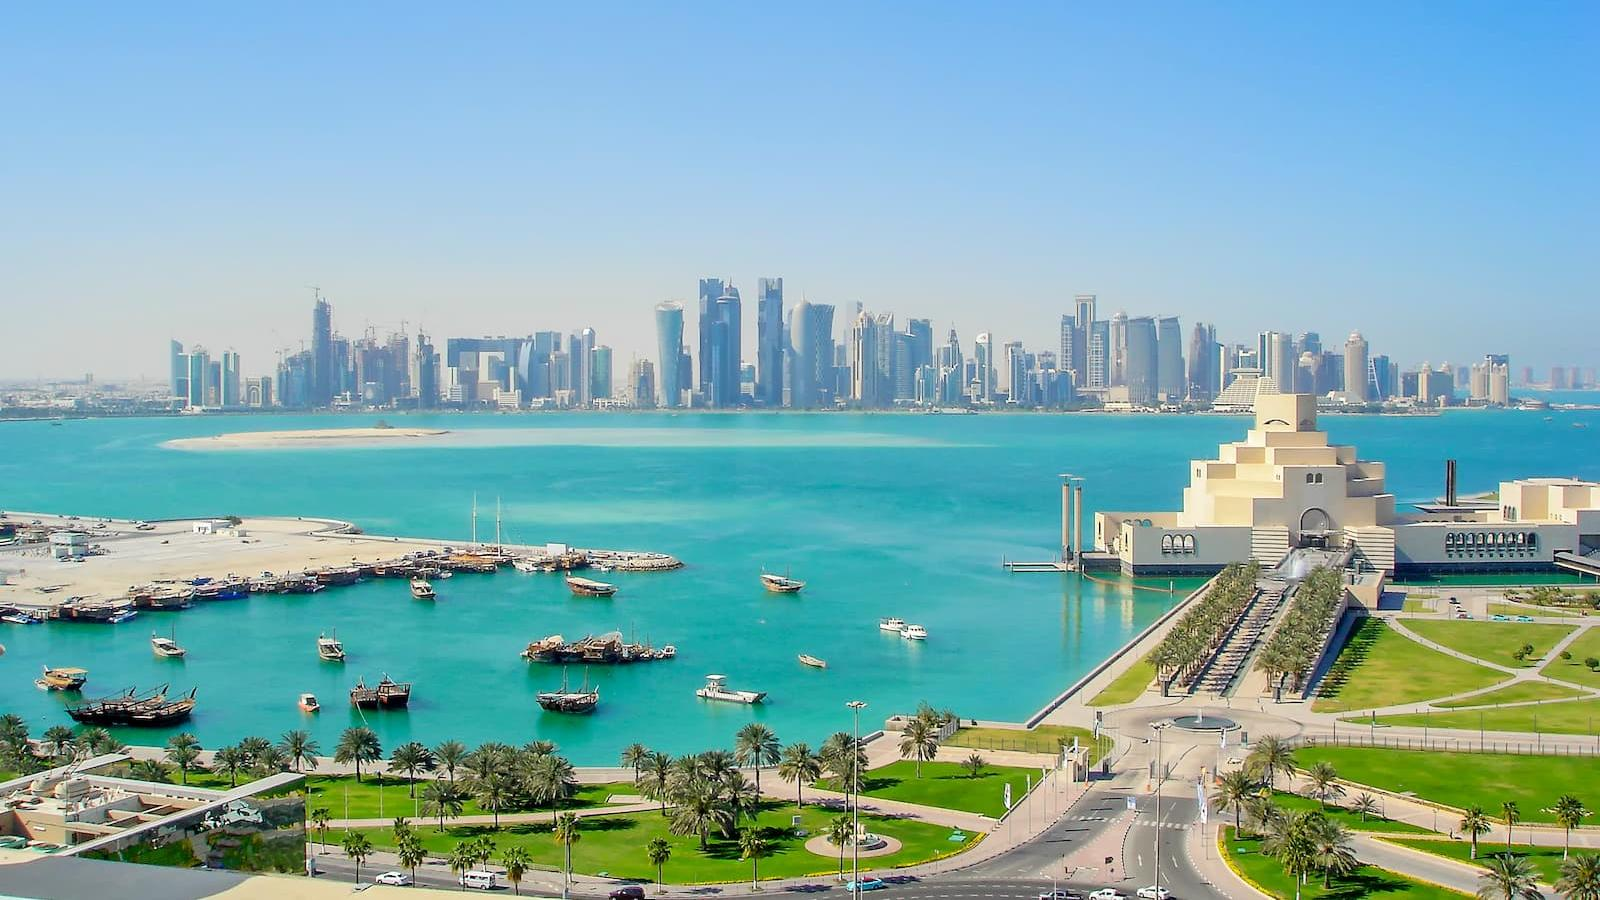 HBKU: Getting Qatar's tourism sector back on track after COVID-19